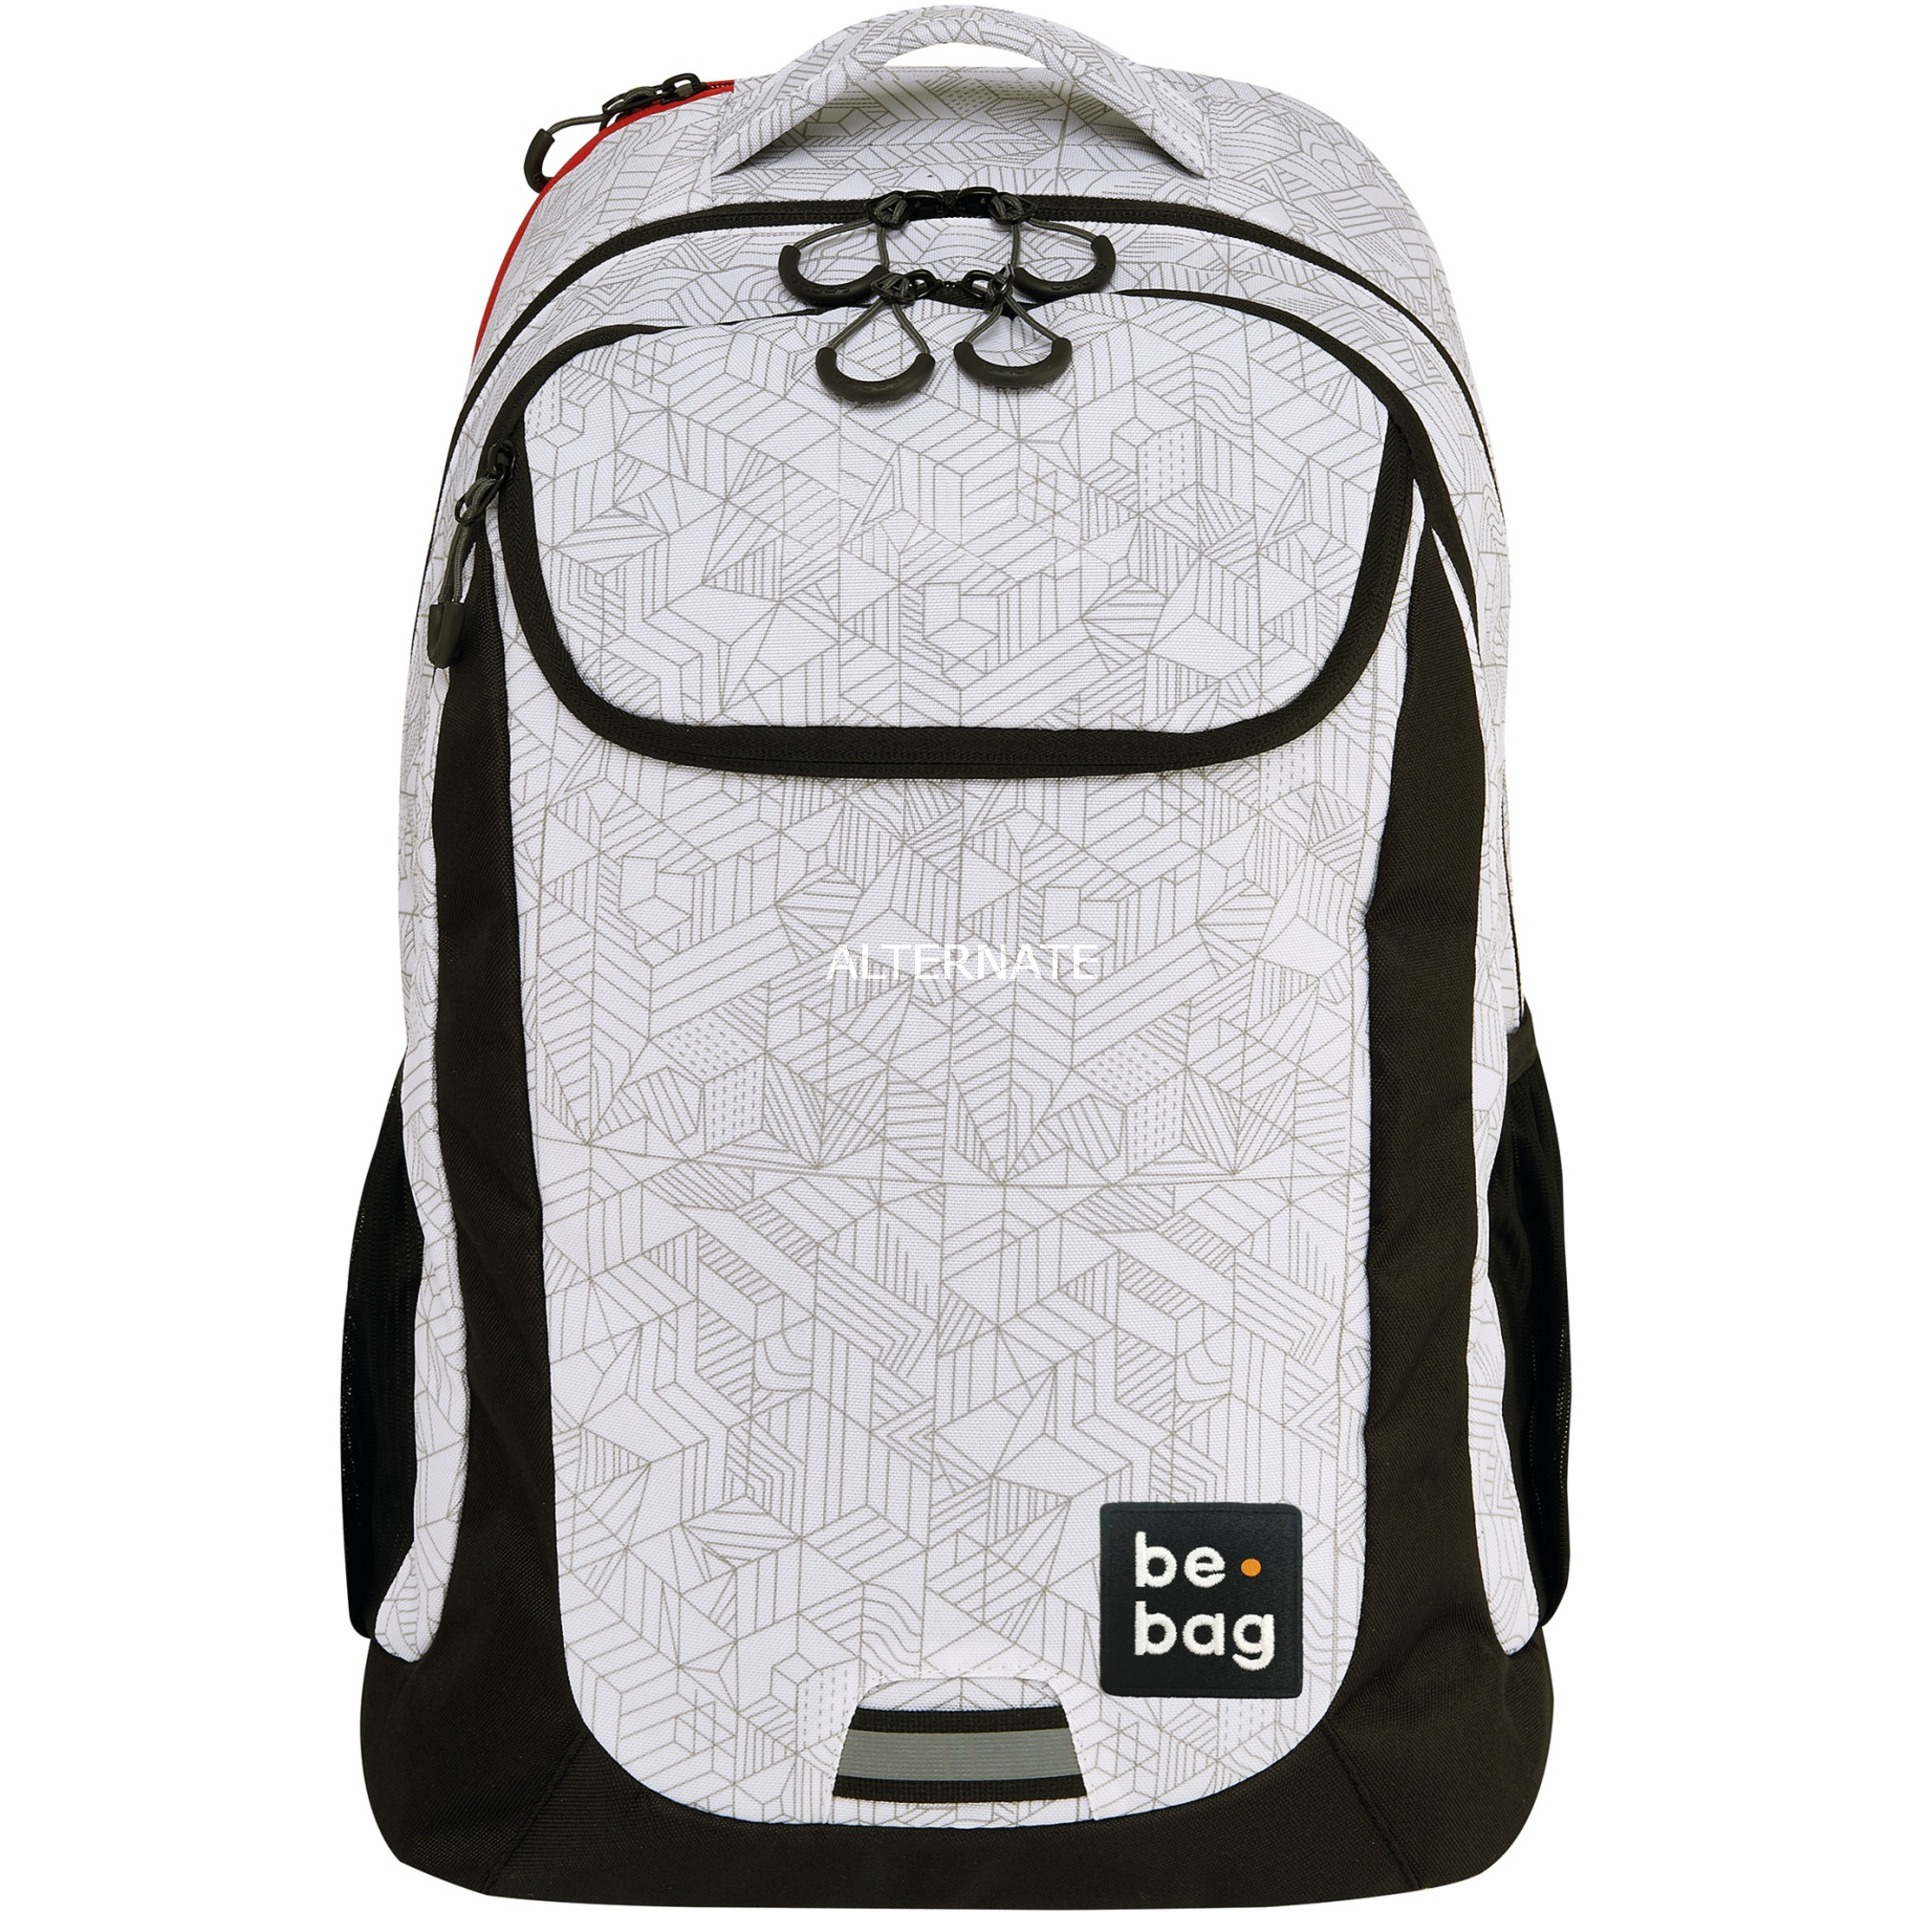 be.bag be.active Niño/niña School backpack Negro, Blanco Poliéster, Mochila